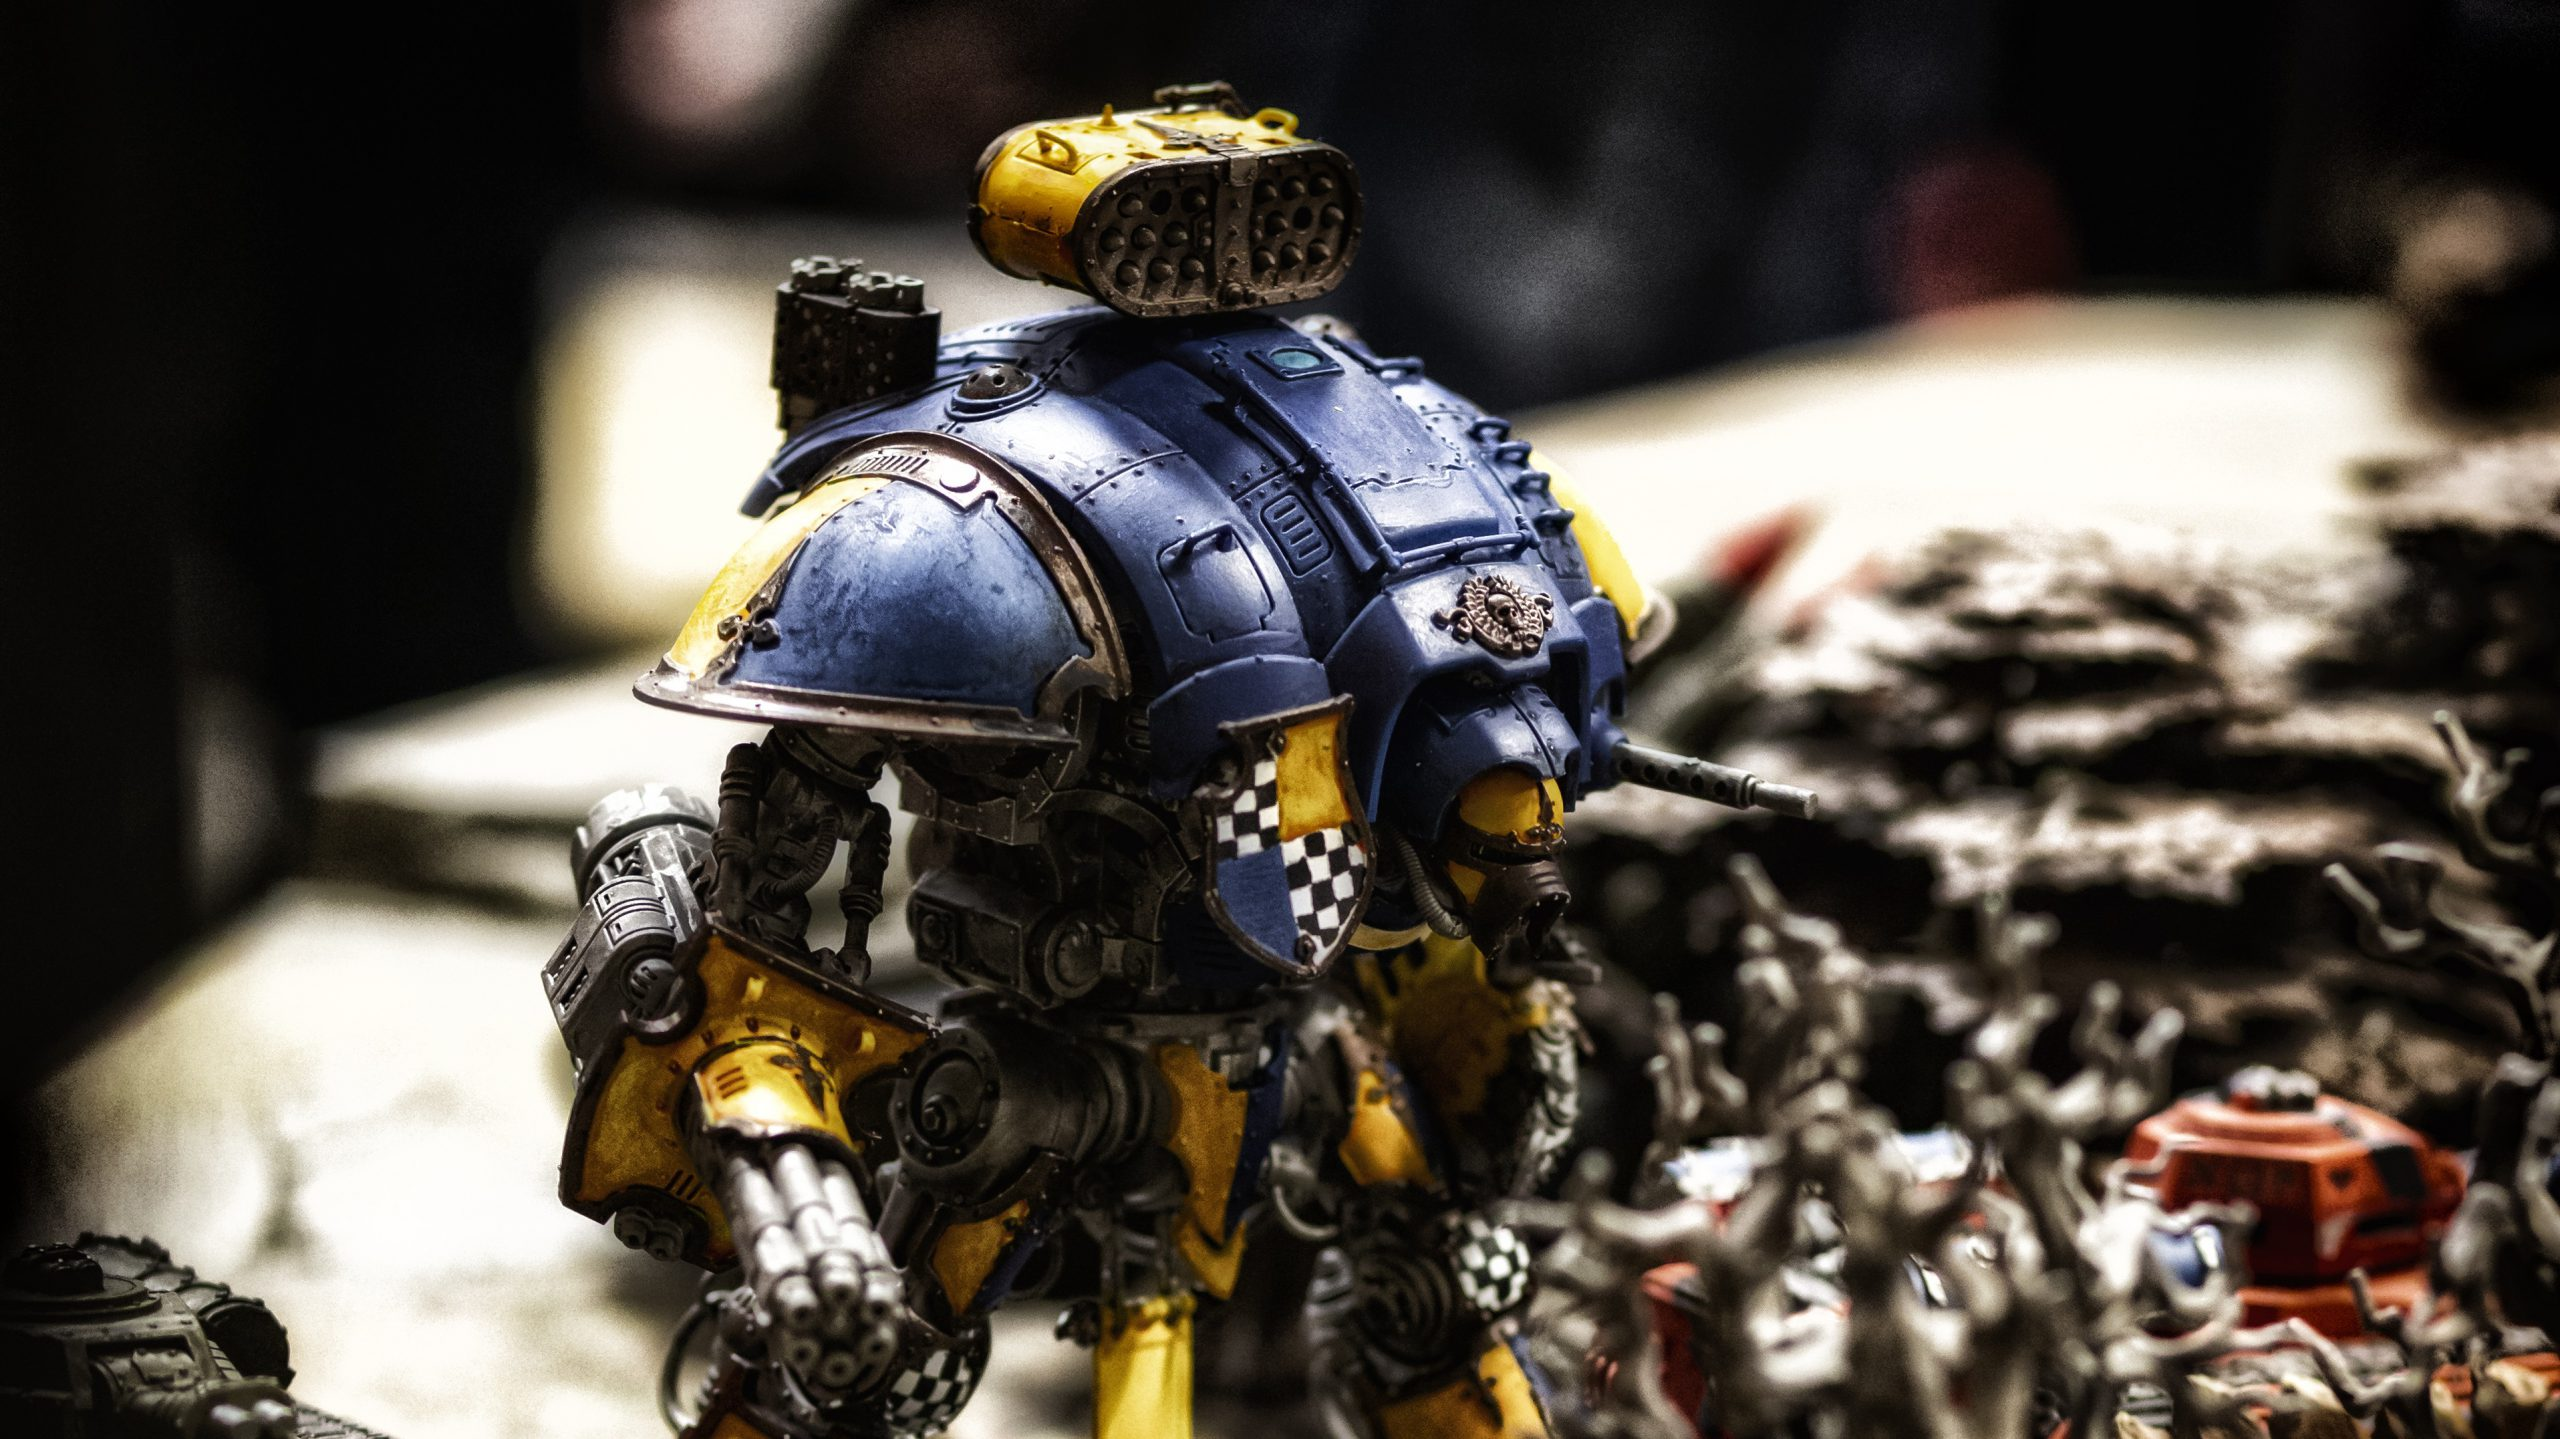 An imperial knight